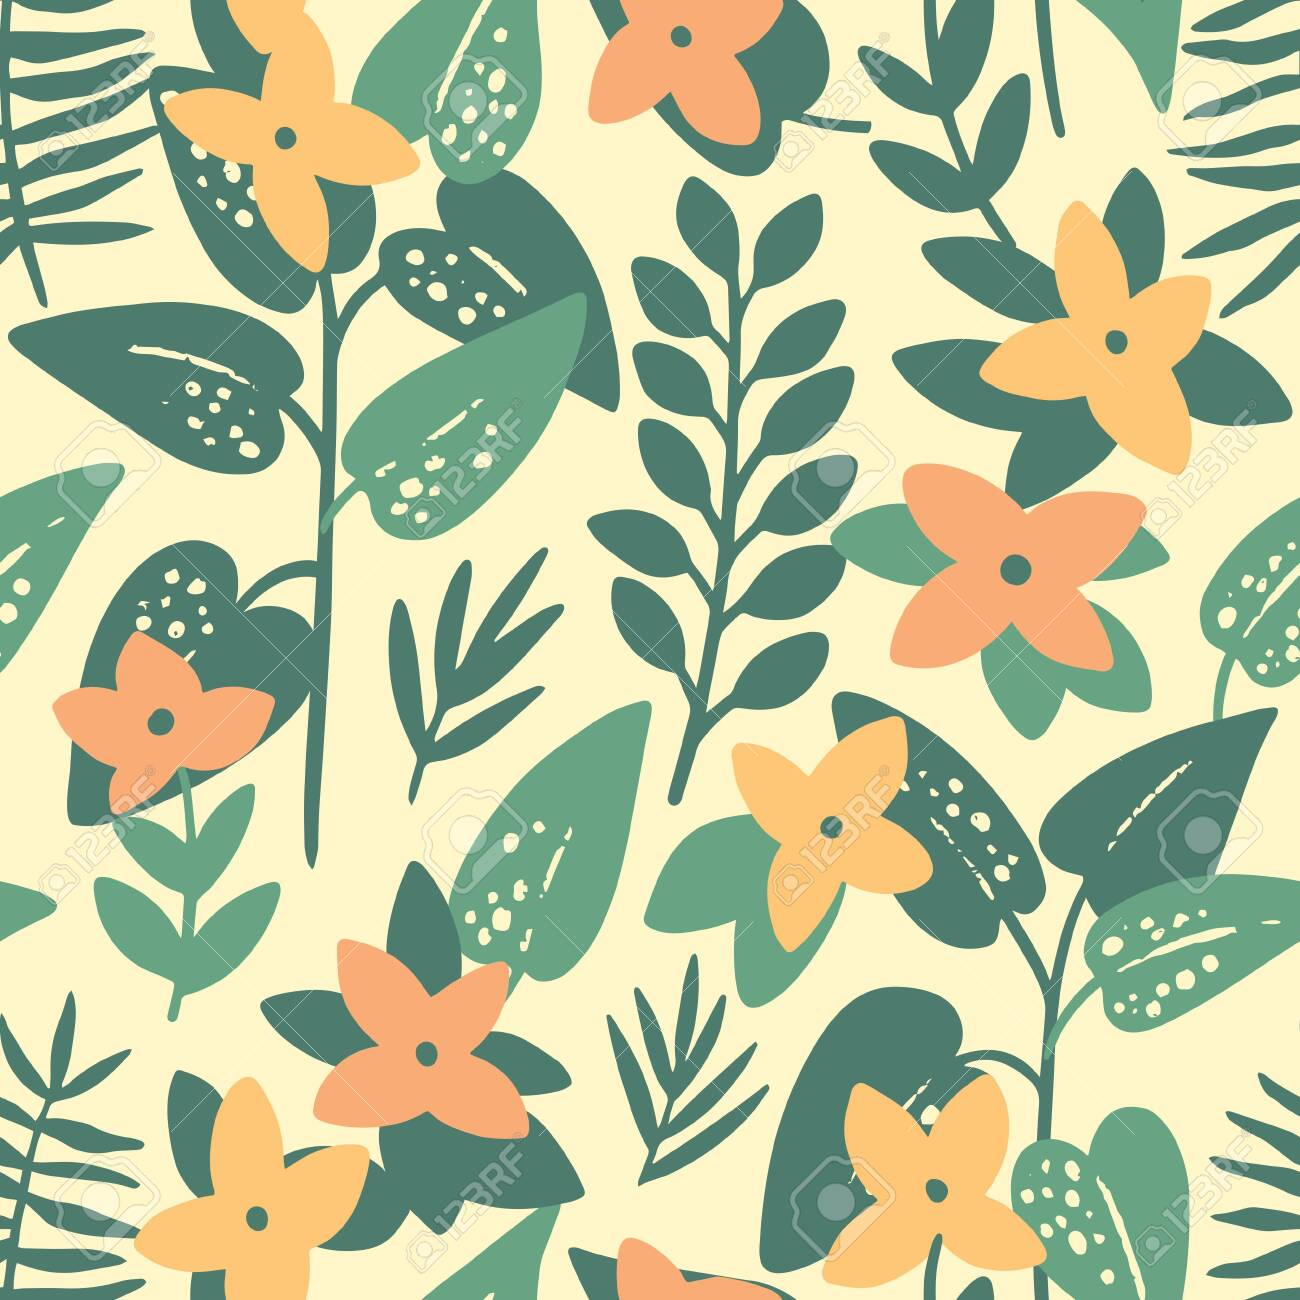 Pink frangipani (plumeria) flowers and palm leaves seamless pattern. Tropical background. Retro vector illustration - 144102763